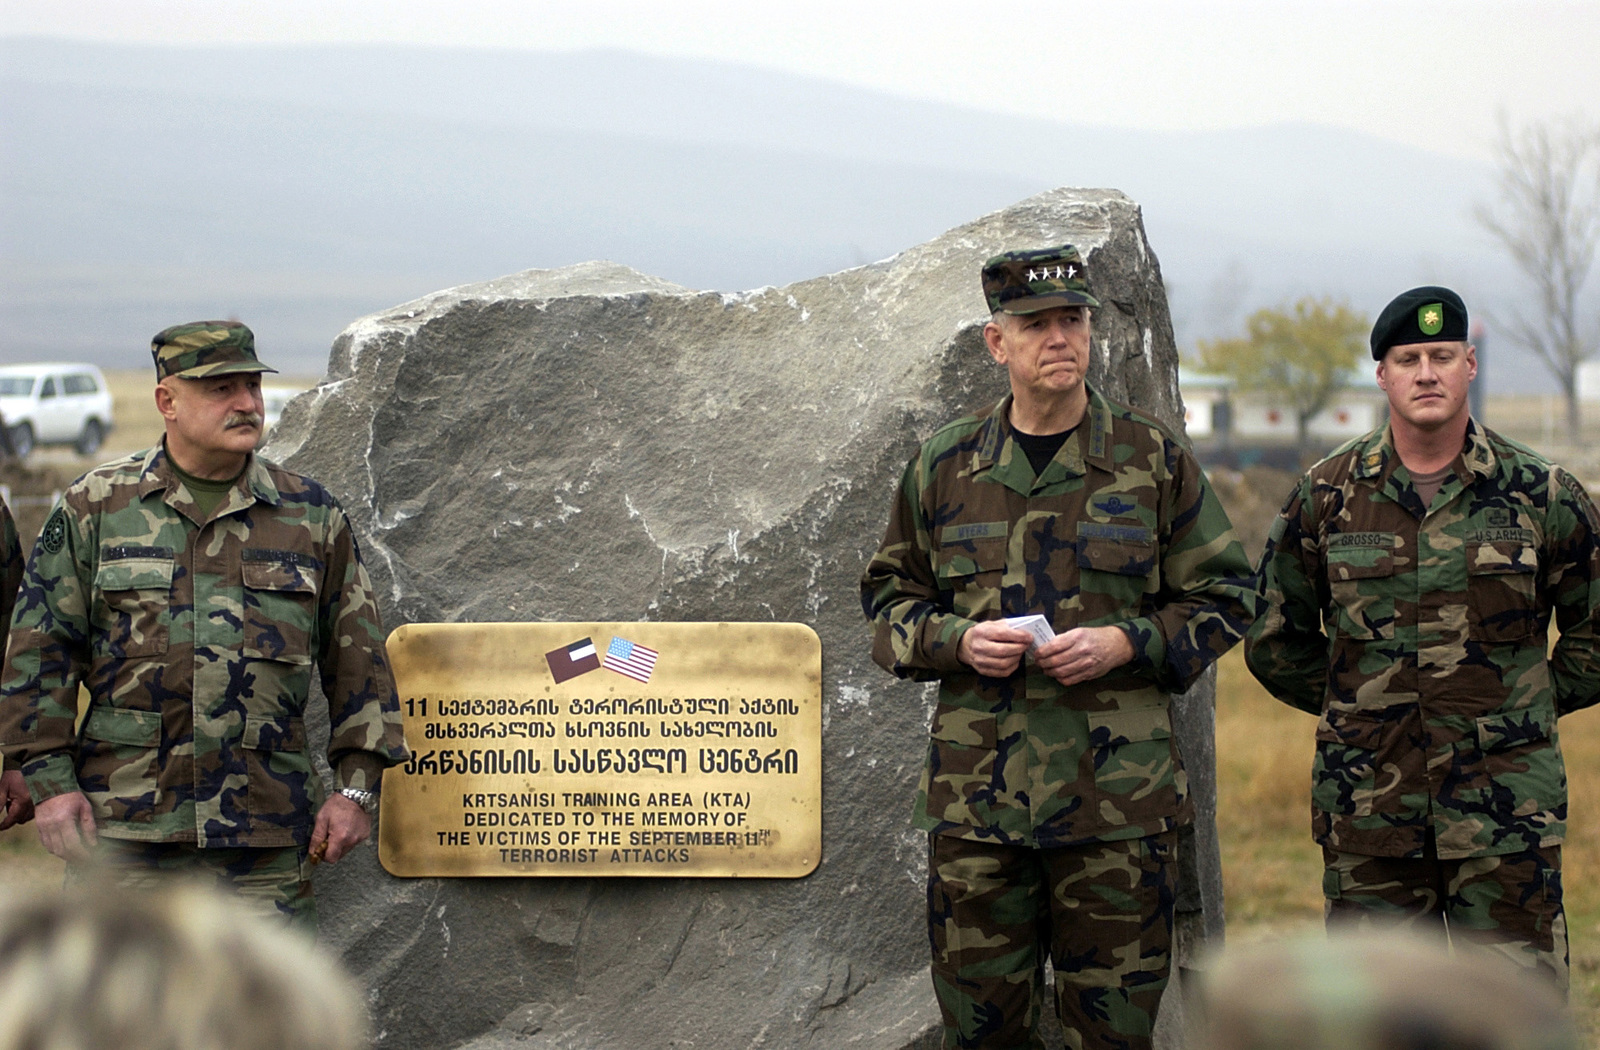 US Air Force (USAF) General (GEN) Richard B. Myers (center), Chairman of the Joint Chiefs of STAFF (JCS), and General Lieutenant David Tevzadze, Republic of Georgia Minister of Defense, speak at a dedication ceremony. A memorial dedication ceremony held to honor all of the victims of the September 11th terrorist attack in New York and the Pentagon is conducted outside of the Advanced Operational Base for the Georgia Train and Equip Program in Krtsanisi, Georgia. General Myers is touring the Georgia Train and Equip Program (GTEP) complex and training grounds along with meeting top military officials and the Georgian President to discuss GTEP. GTEP is a flexible, time phased training...